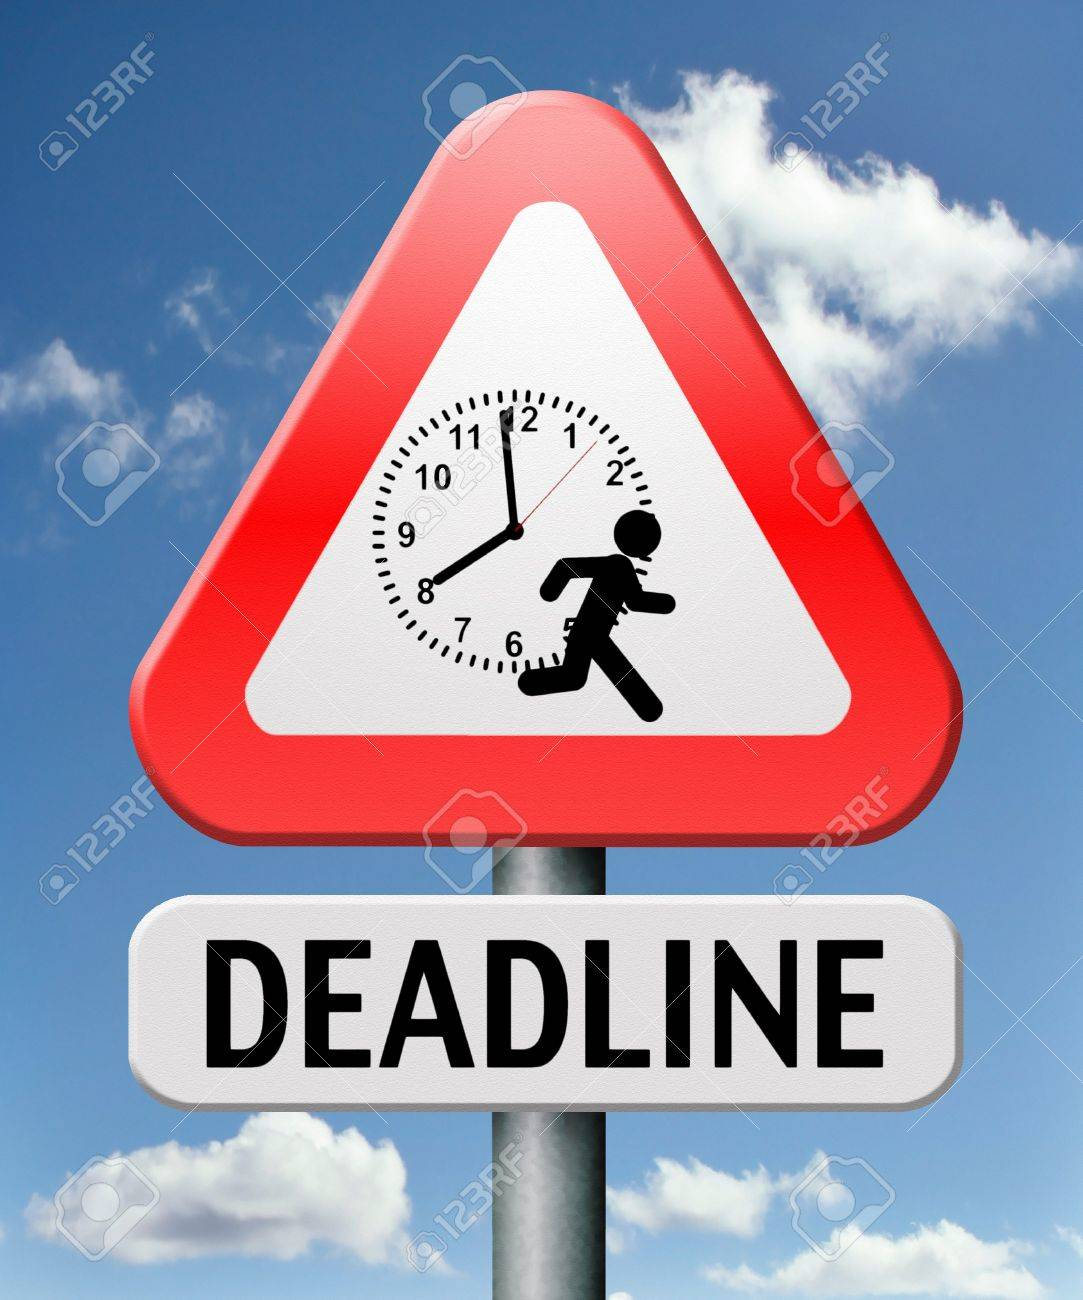 deadline hurry up and work against the clock gives job stress stock photo deadline hurry up and work against the clock gives job stress last minute task or late target date